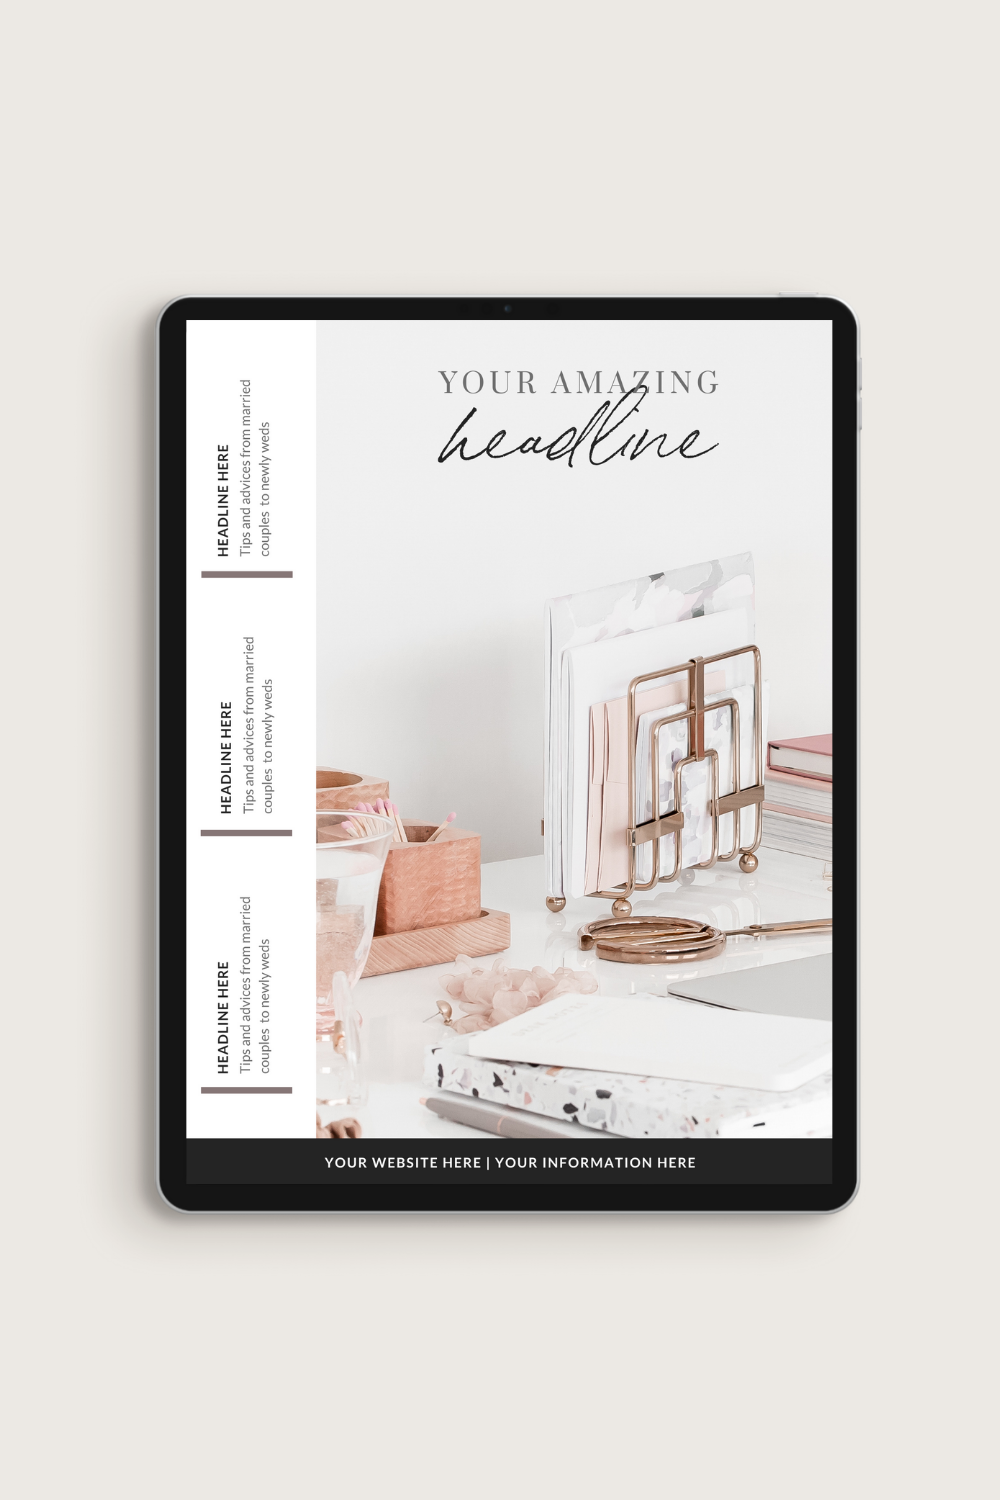 Stylish Boss eBook Workbook Canva Template